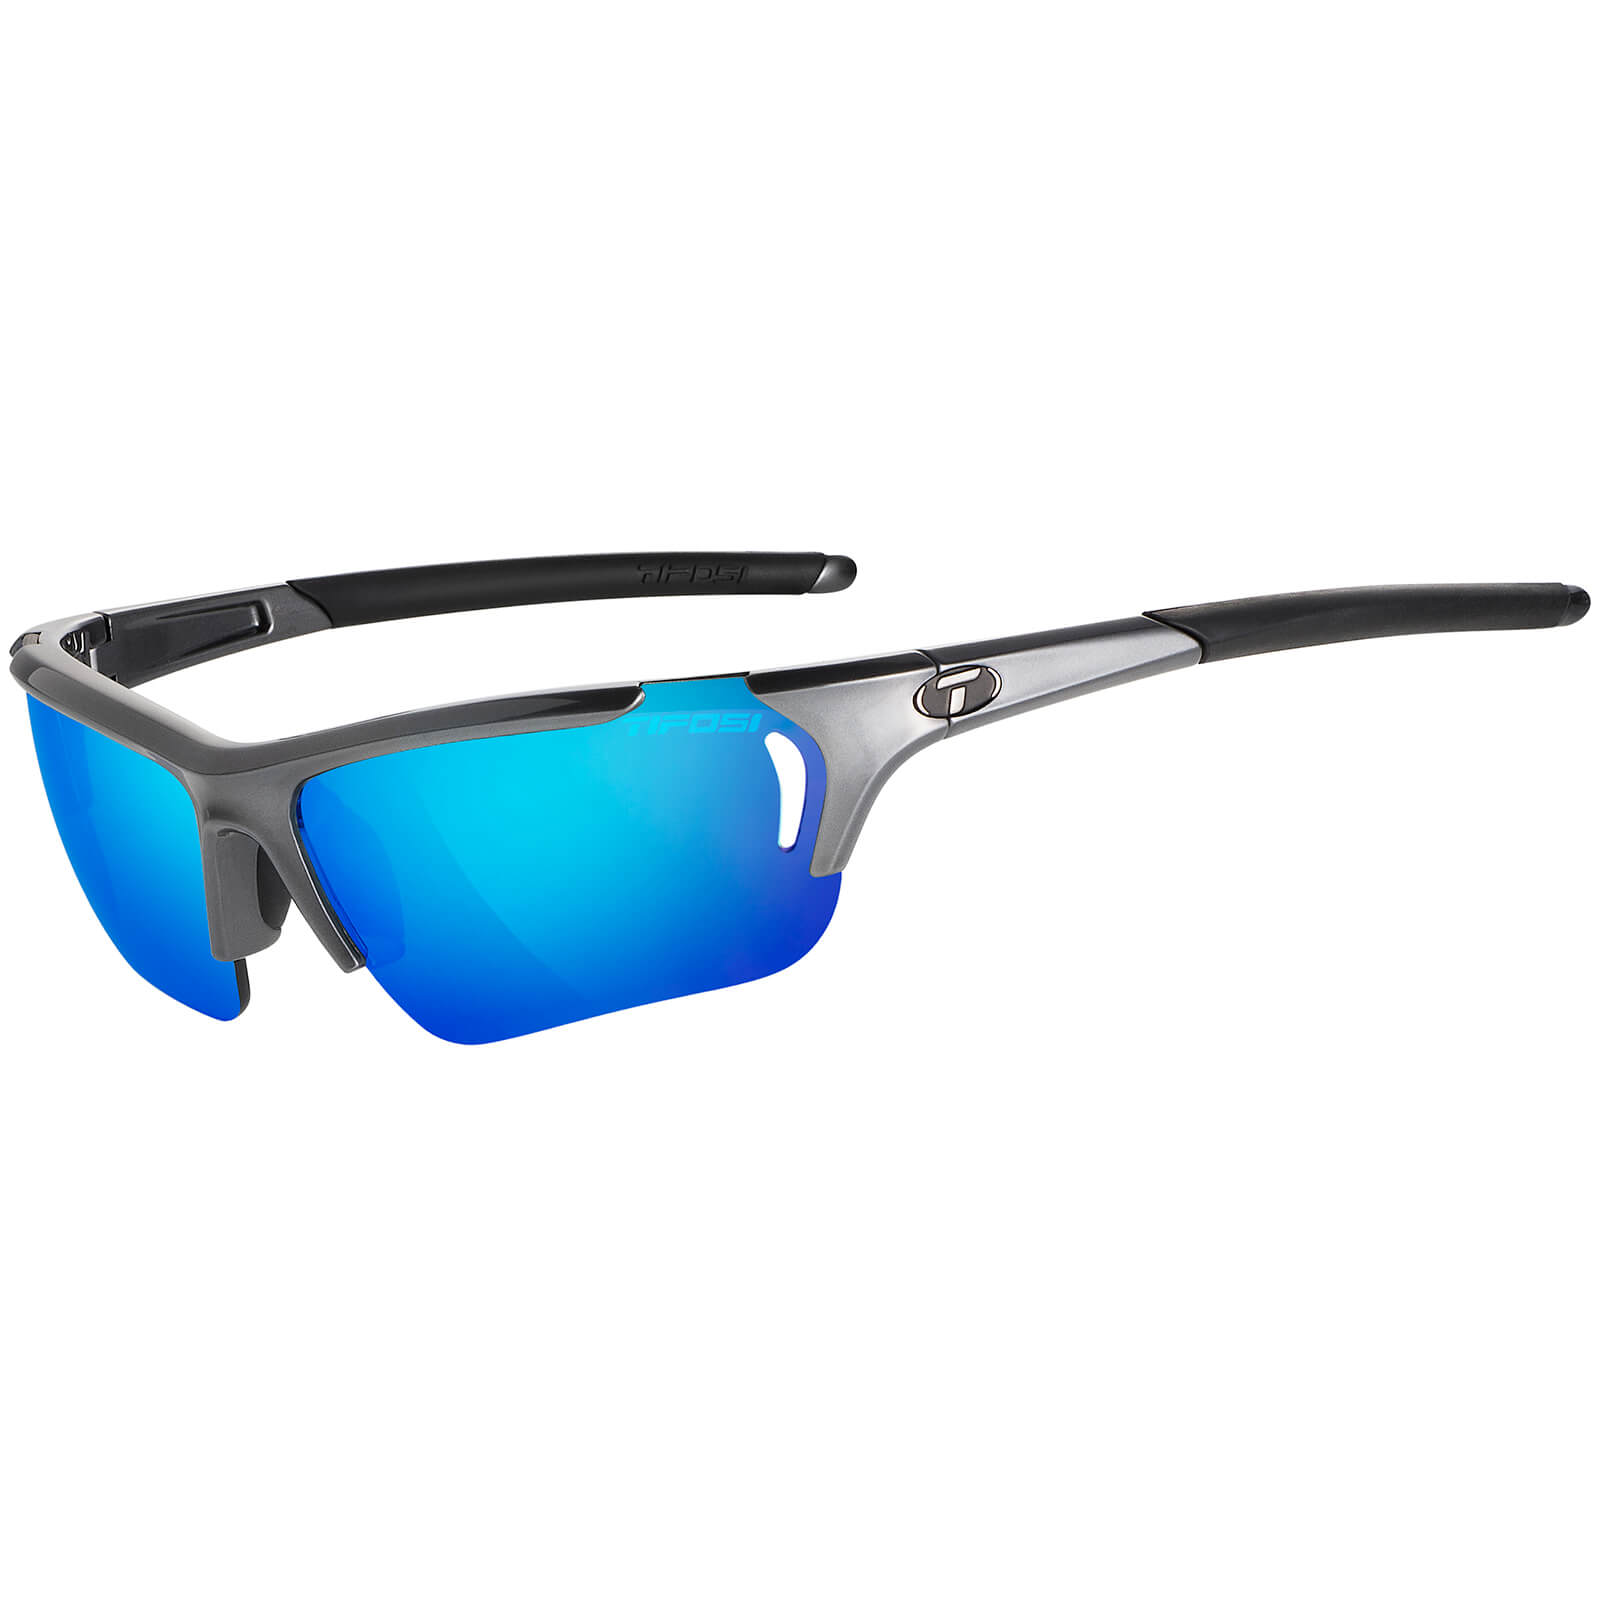 Tifosi Radius FC Interchangeable Sunglasses - Gunmetal /Clarion Blue